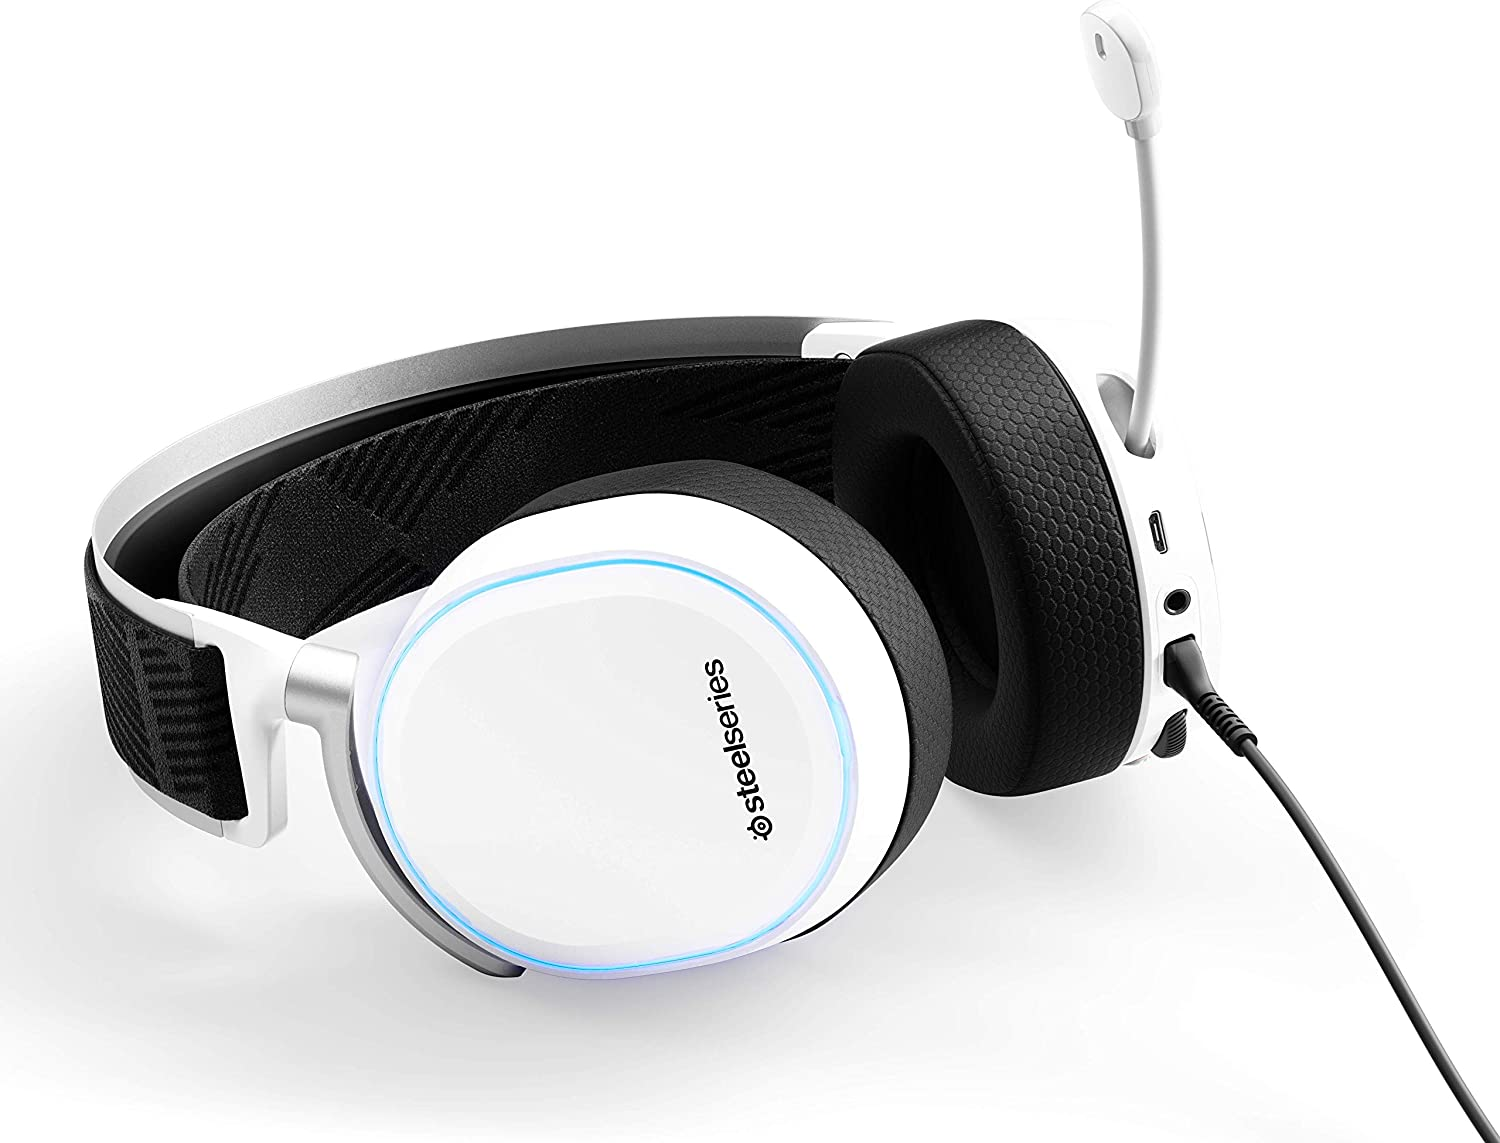 Amazon.com: SteelSeries Arctis Pro + GameDAC Audífonos para ...